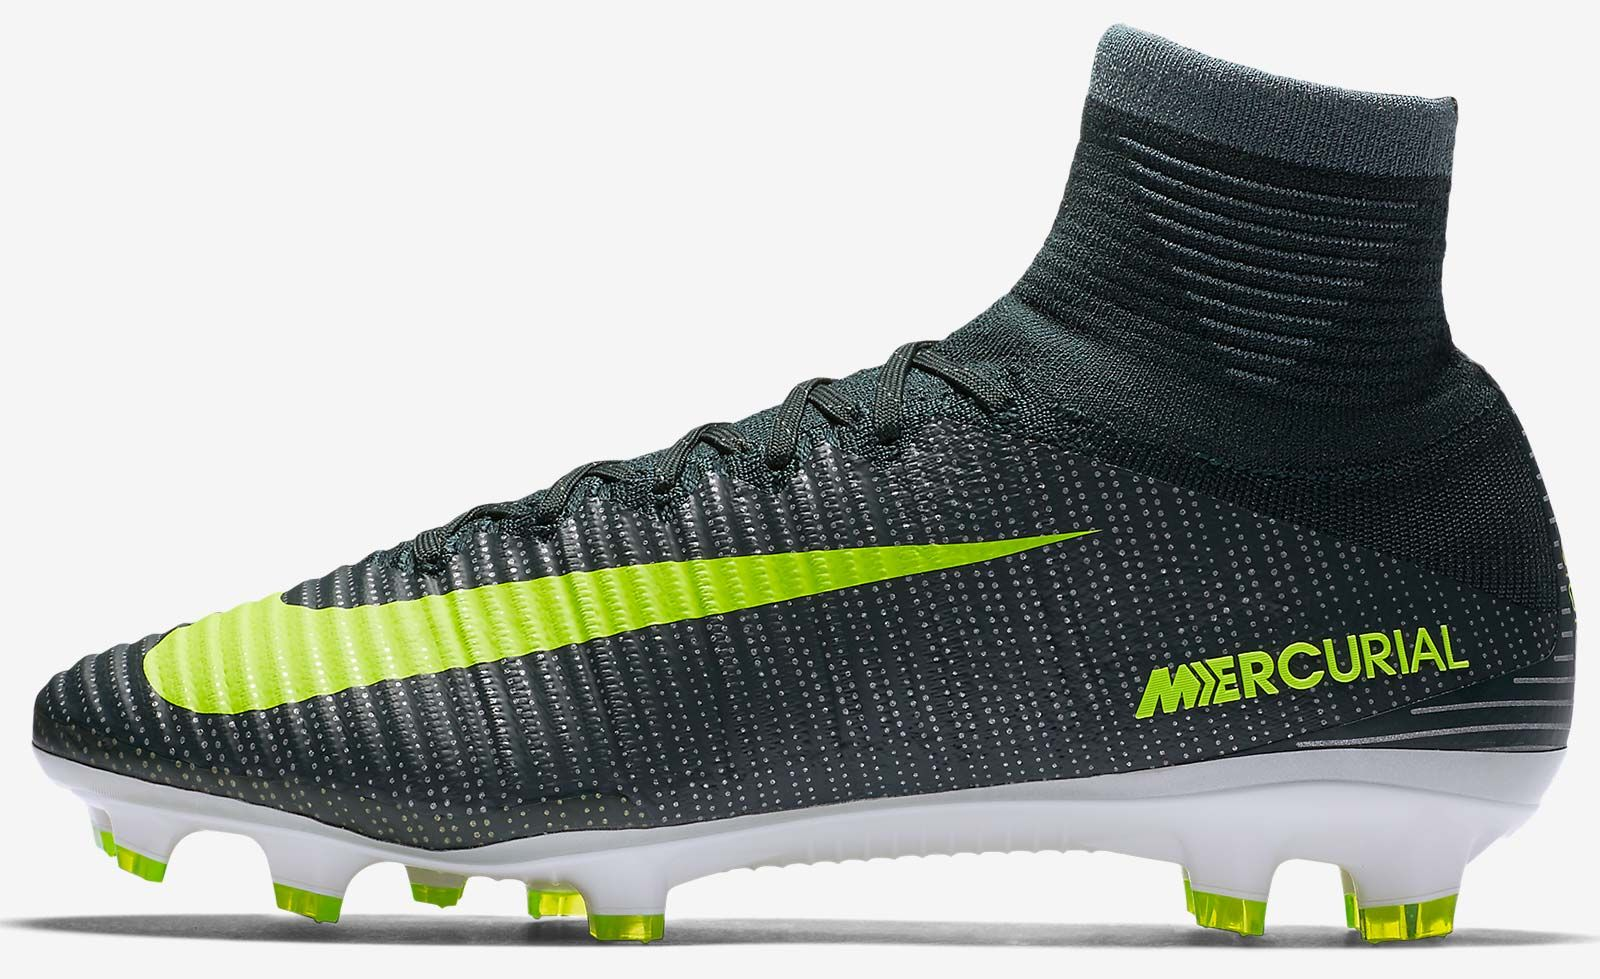 release date 0d0f3 df8bb The dark green Nike Mercurial Superfly 2016-2017 Cristiano ...